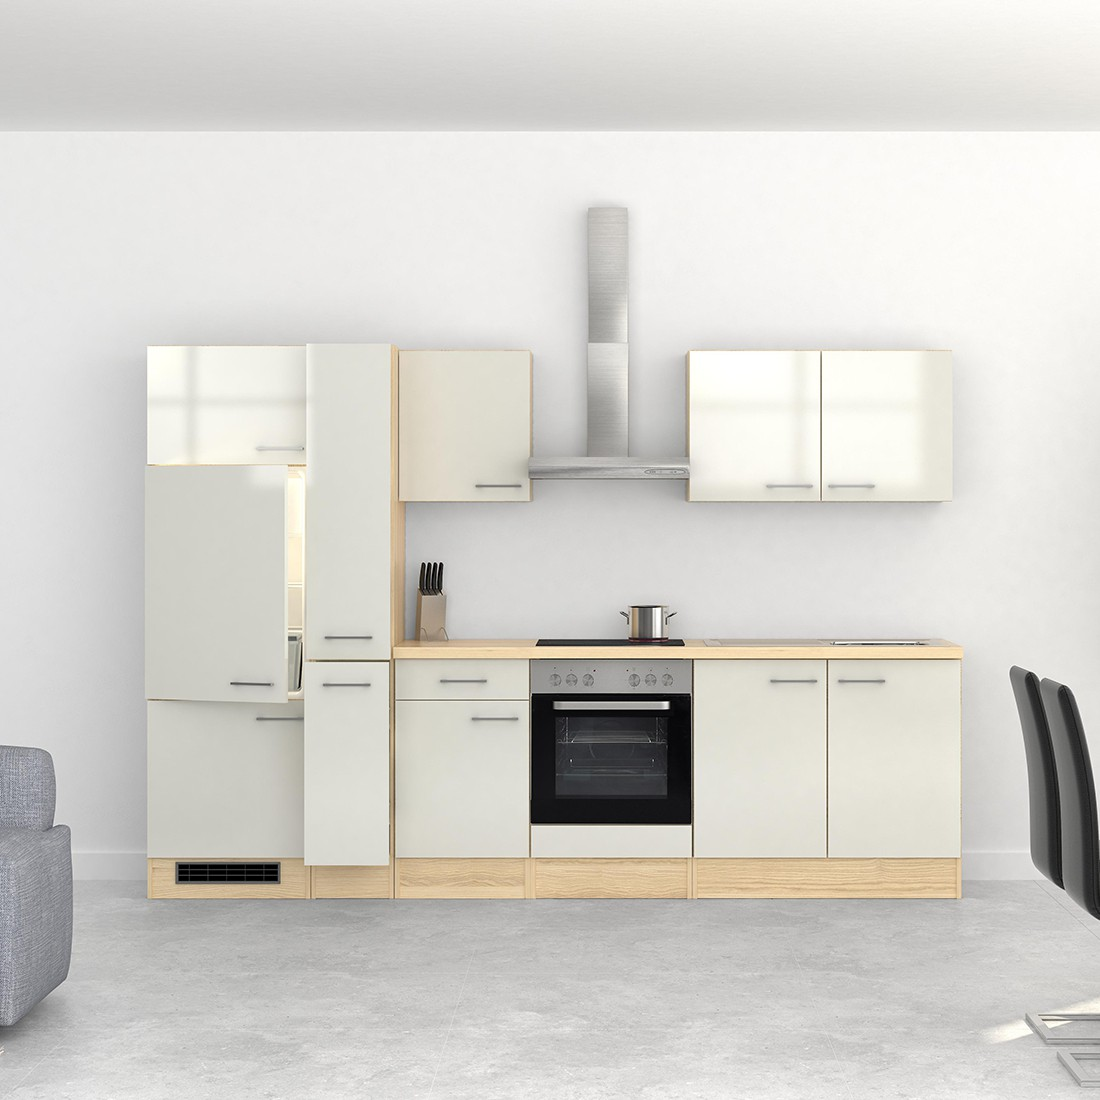 k chenzeile florenz k chenblock mit elektro ger ten 300 cm weiss ebay. Black Bedroom Furniture Sets. Home Design Ideas